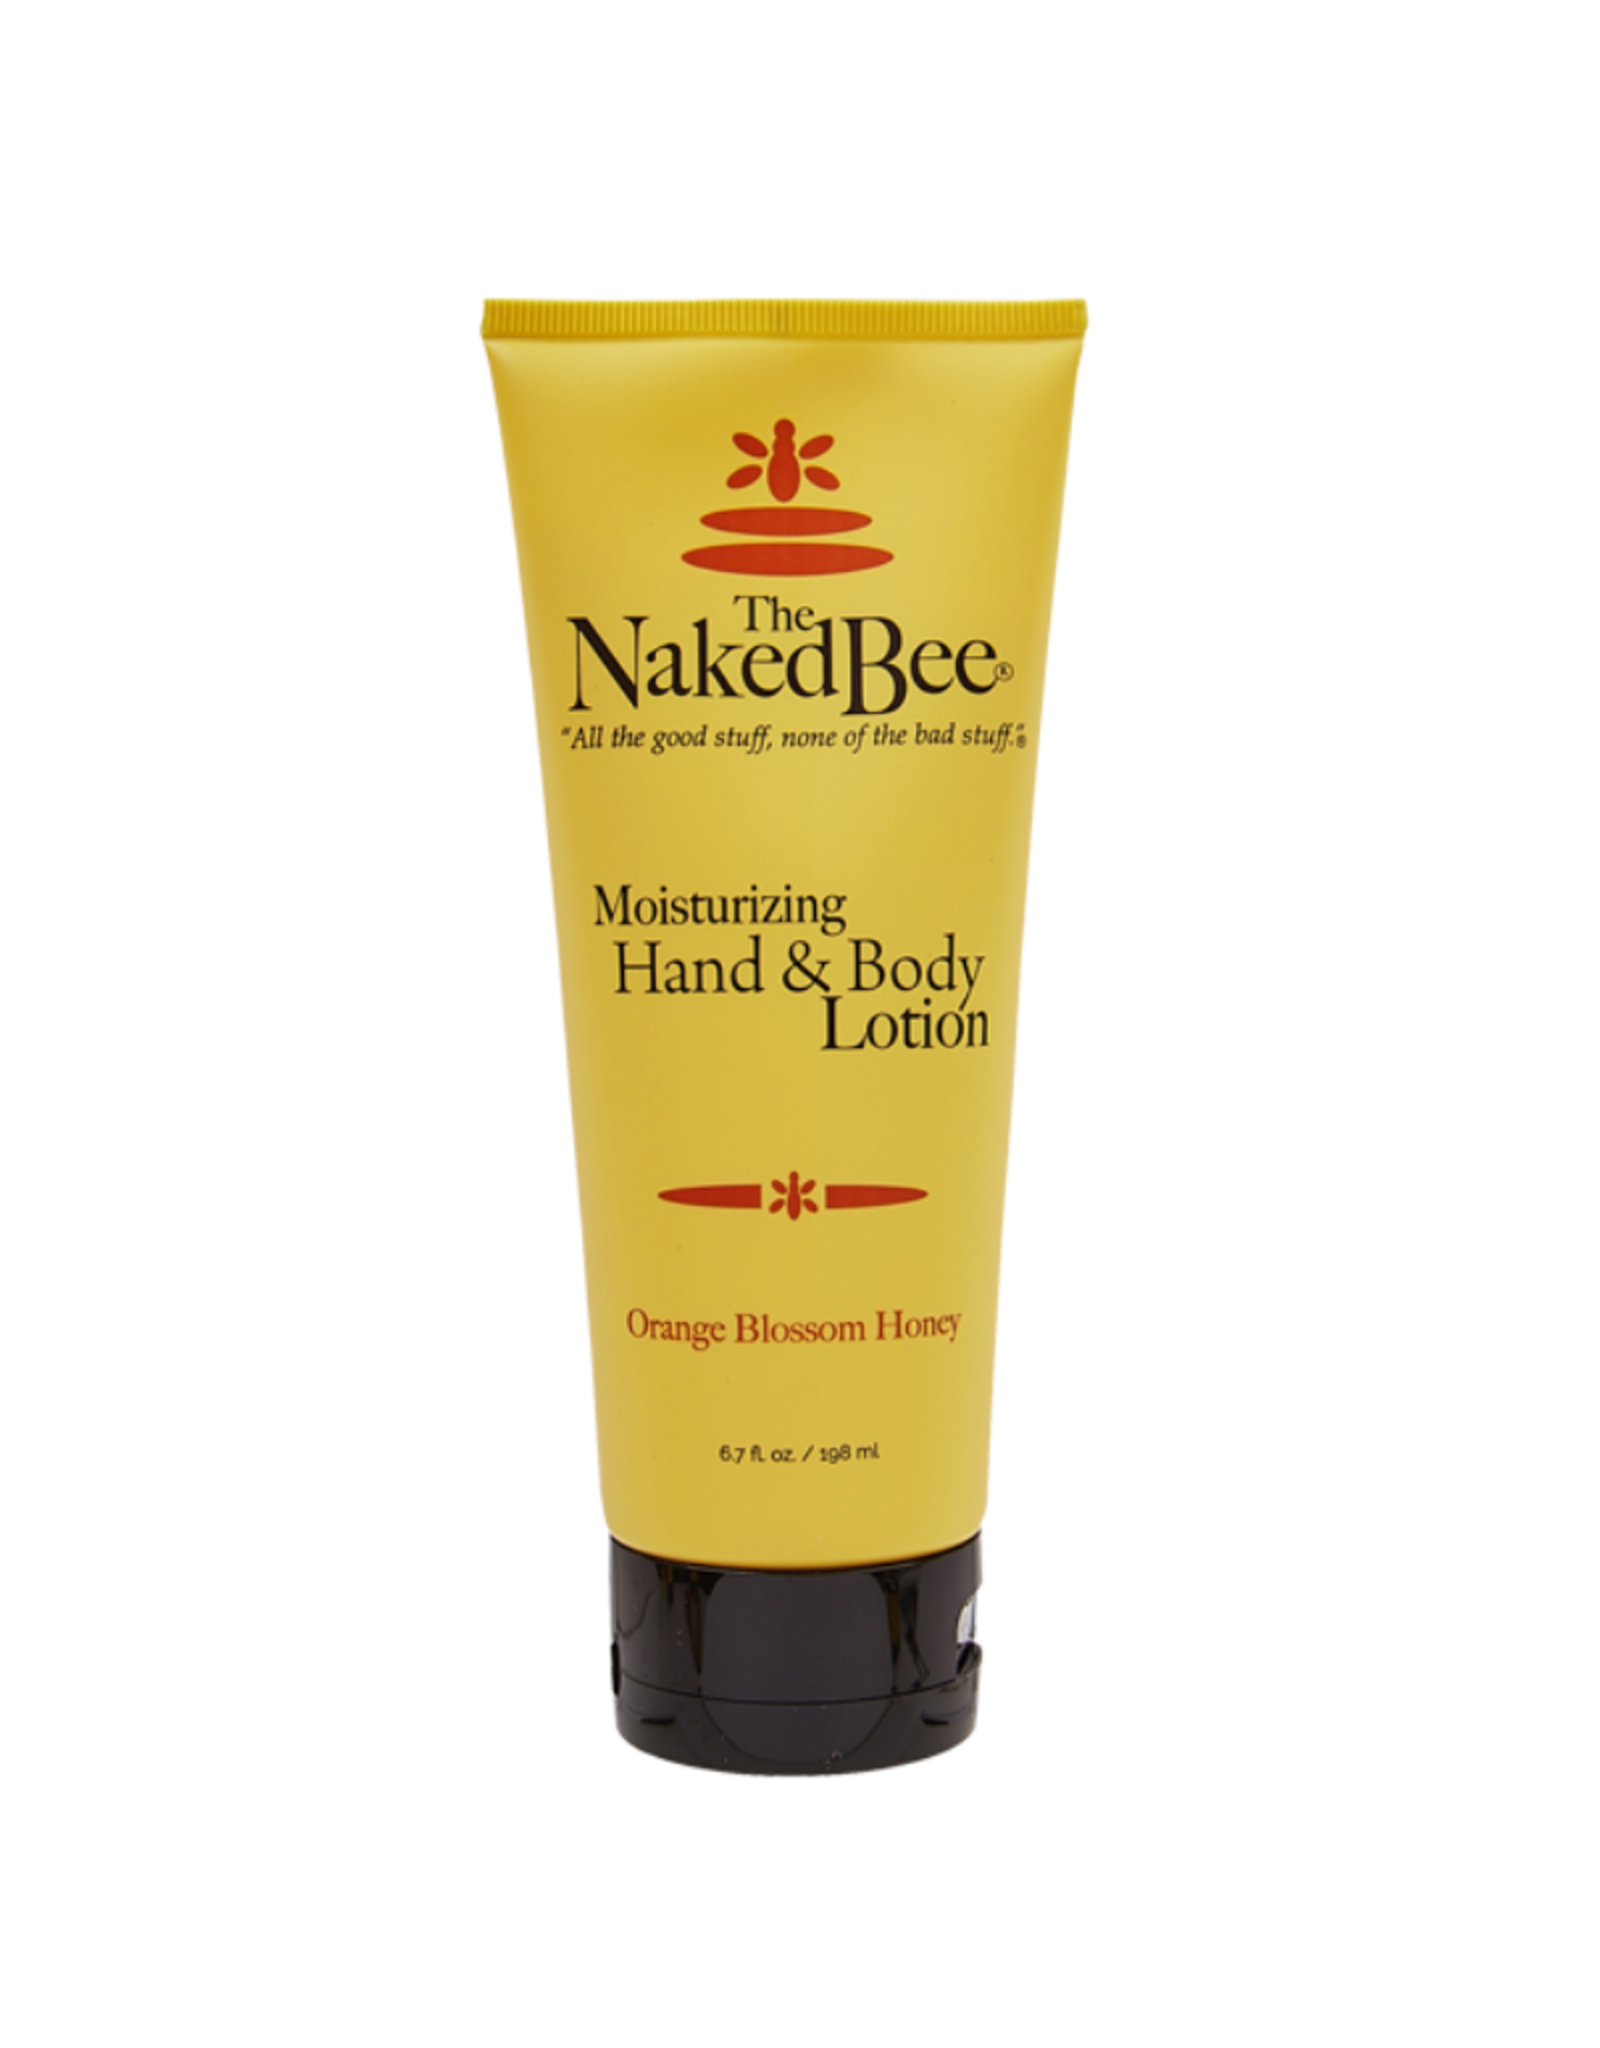 The Naked Bee Moisturizing Hand and Body Lotion 6.7oz